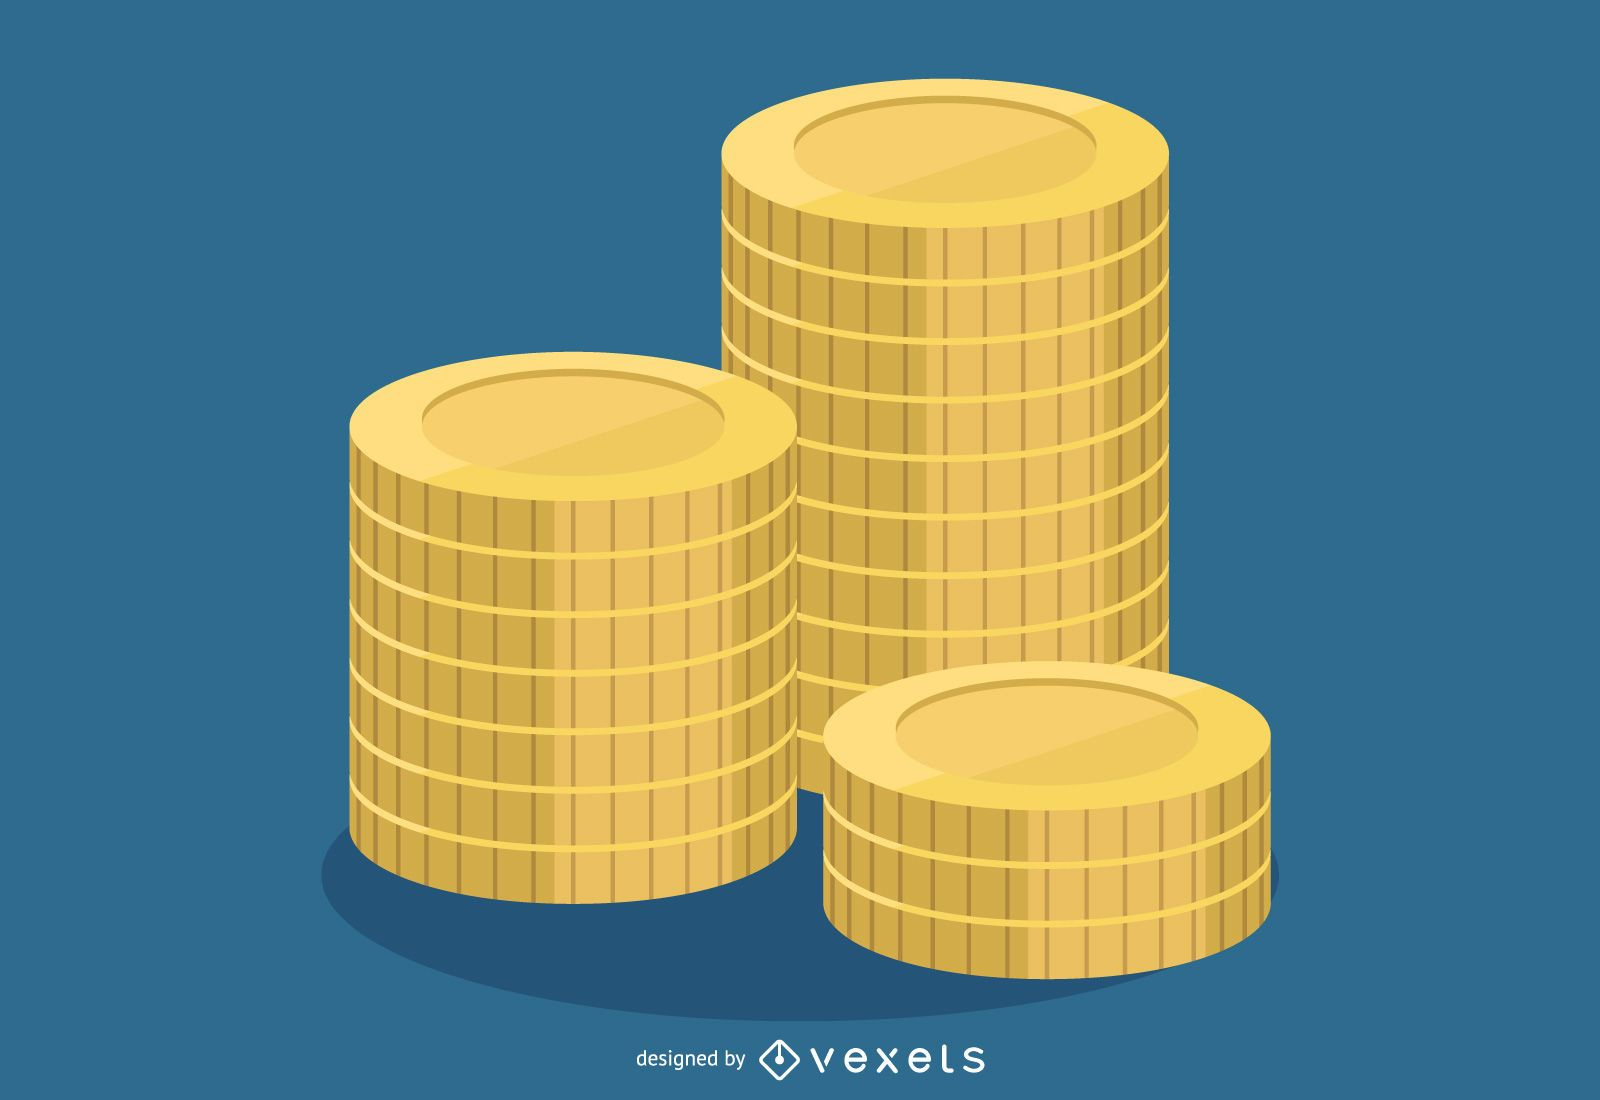 Stacked Gold Coins Design